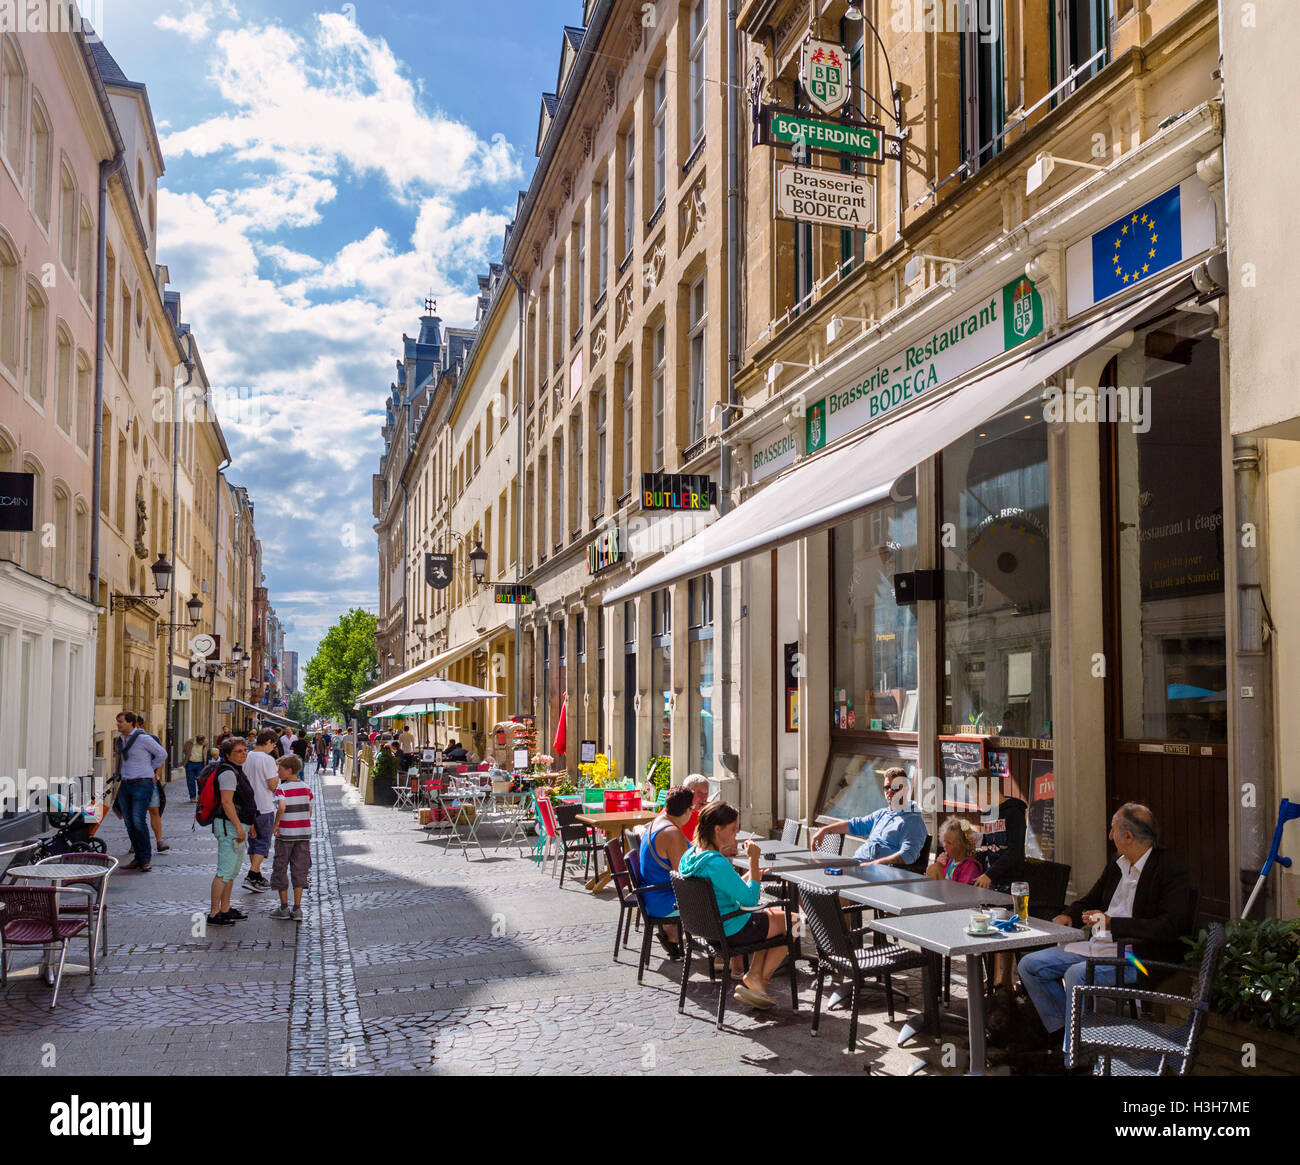 Restaurant Cafe Francais Luxembourg